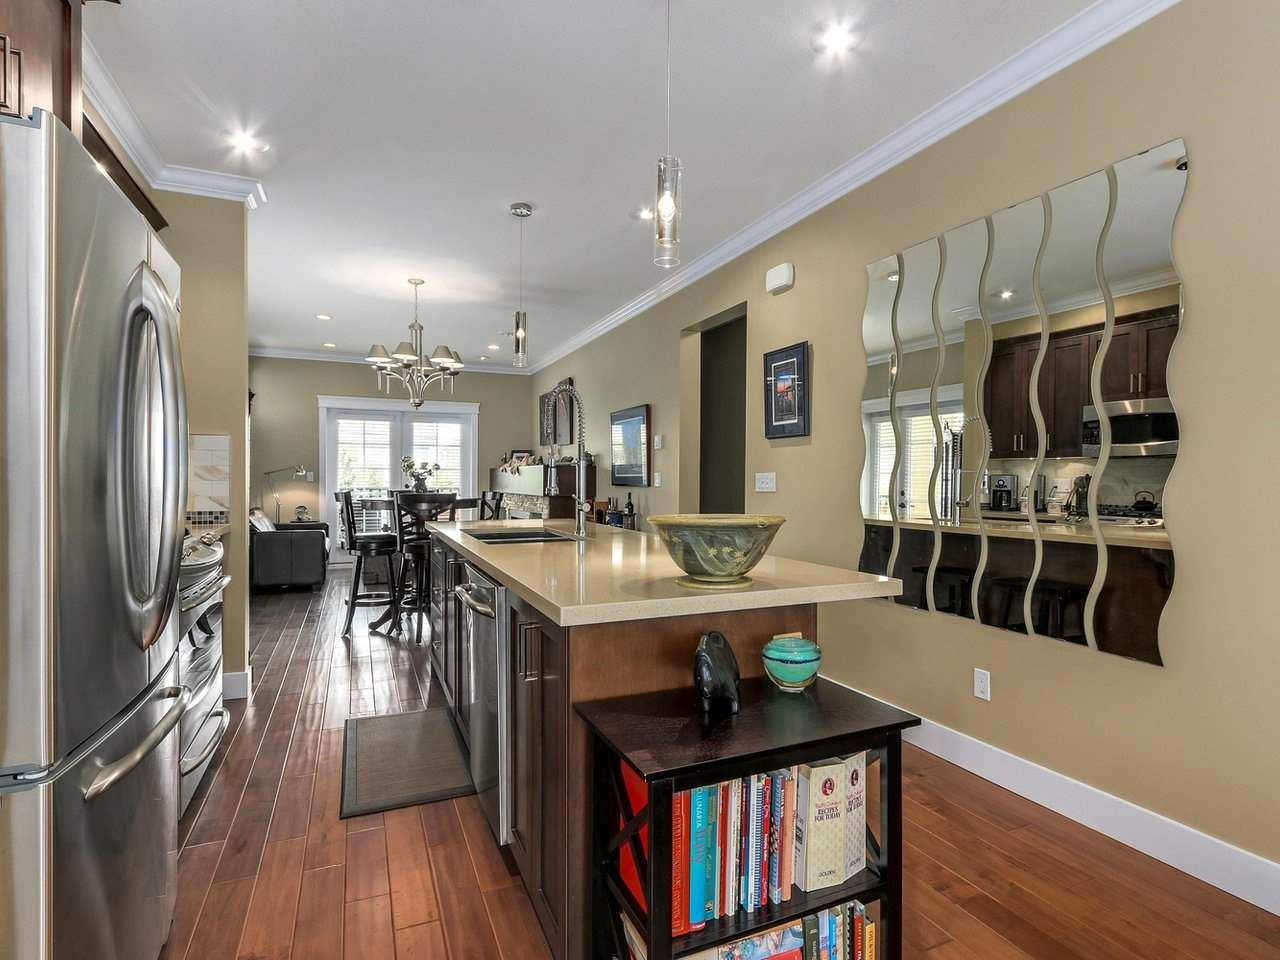 """Photo 7: Photos: 31 17171 2B Avenue in Surrey: Pacific Douglas Townhouse for sale in """"AUGUSTA TOWNHOUSES"""" (South Surrey White Rock)  : MLS®# R2280398"""